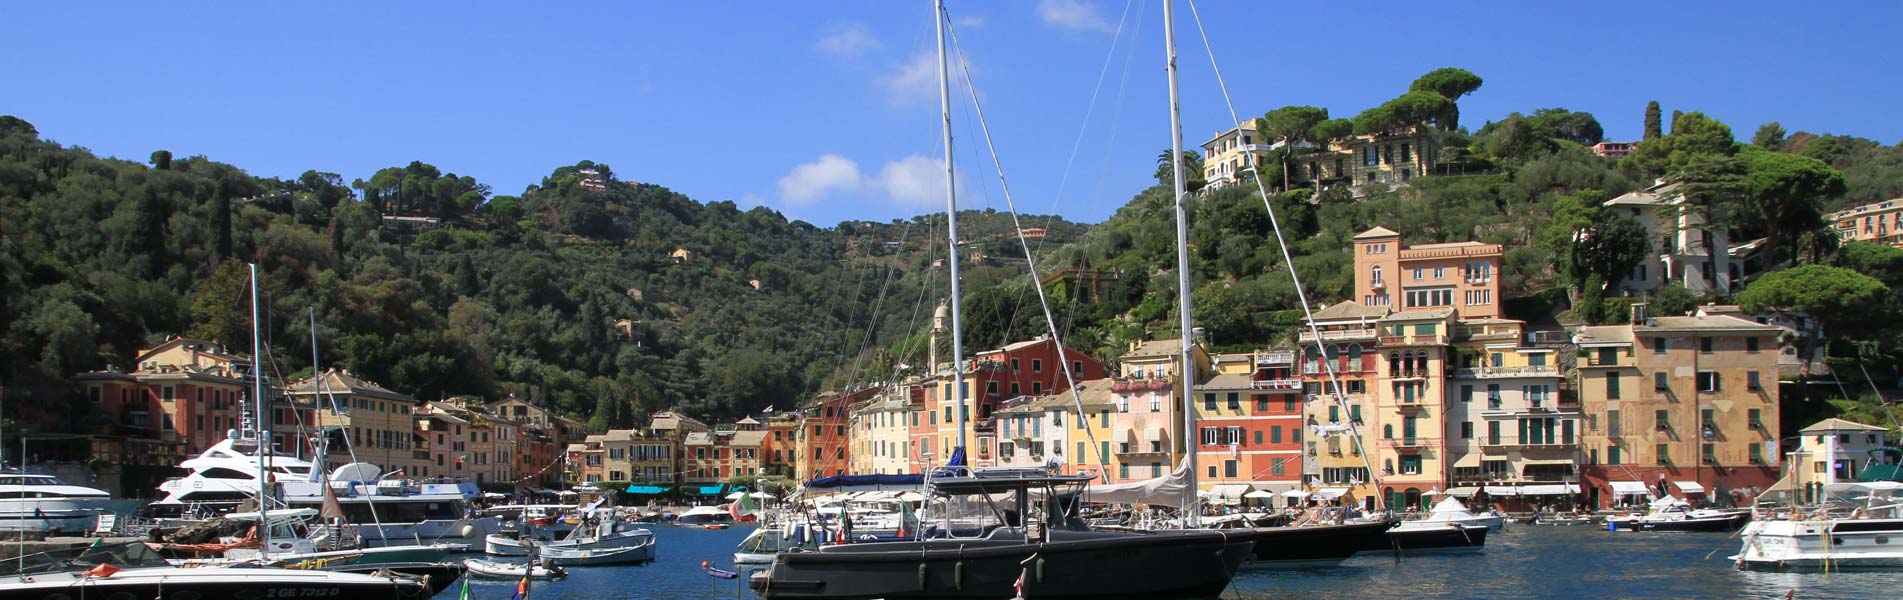 Portofino Jet Set e Shopping